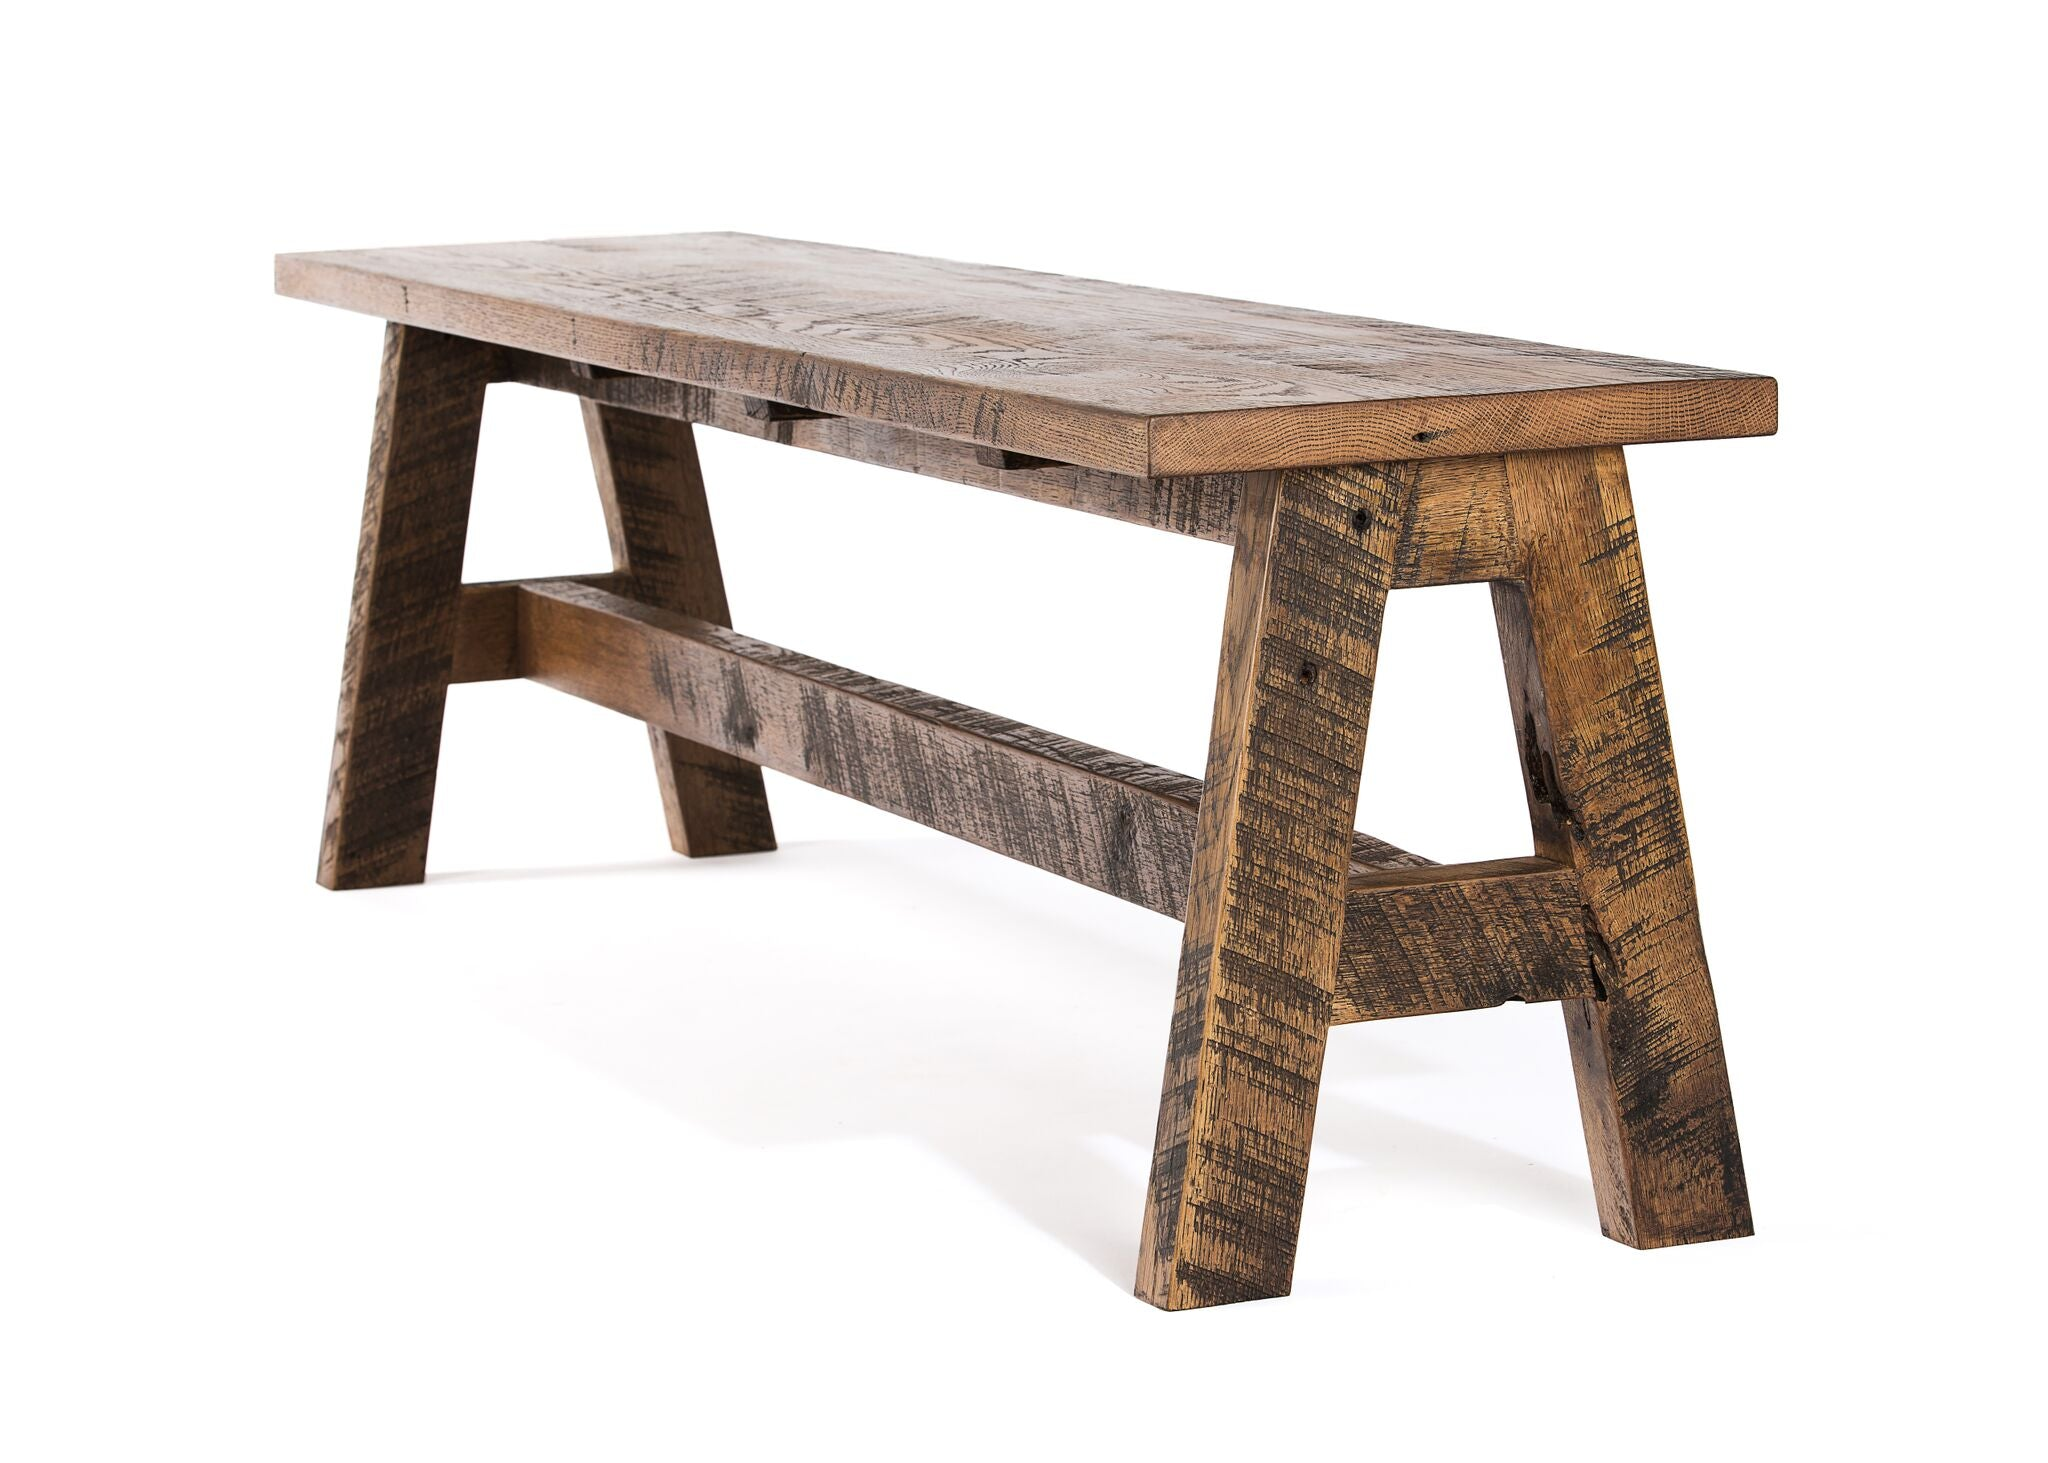 Wood Benches | Trestle Bench | CLASSIC | Natural Ash |  | kingston-krafts-zinc-tables.